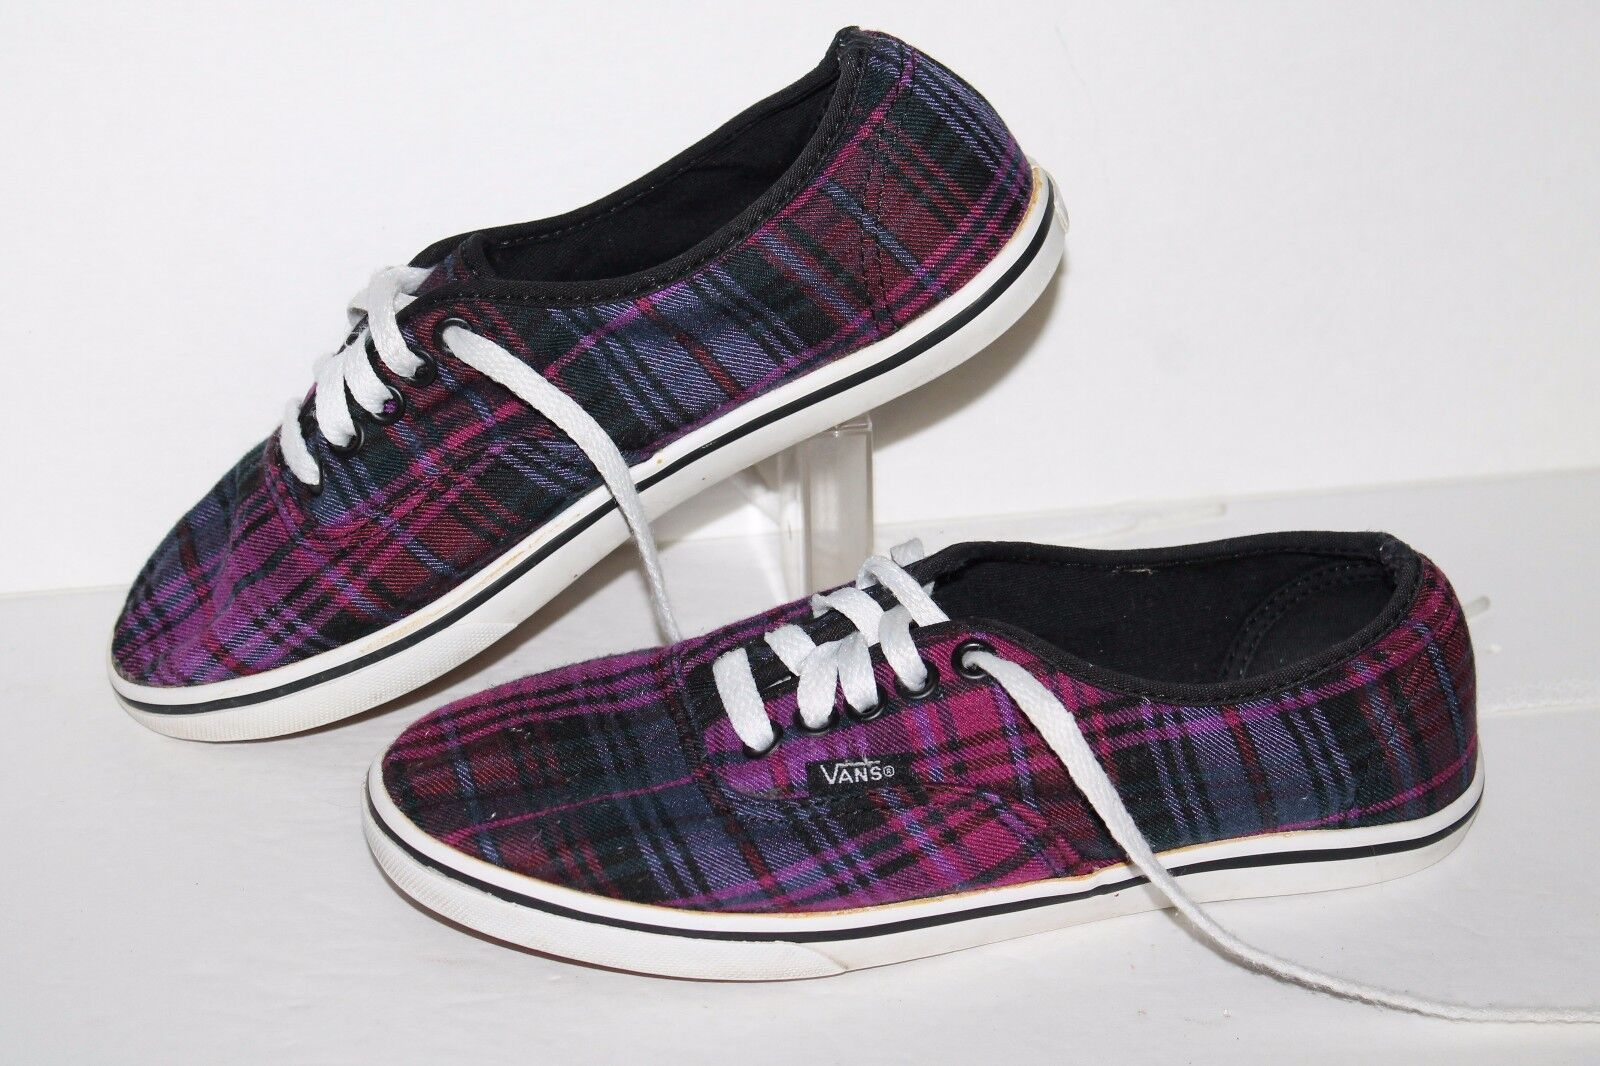 VANS Casual Sneakers, #TB47, Size Purples/Black, Womens US Size #TB47, 6.5 98456d